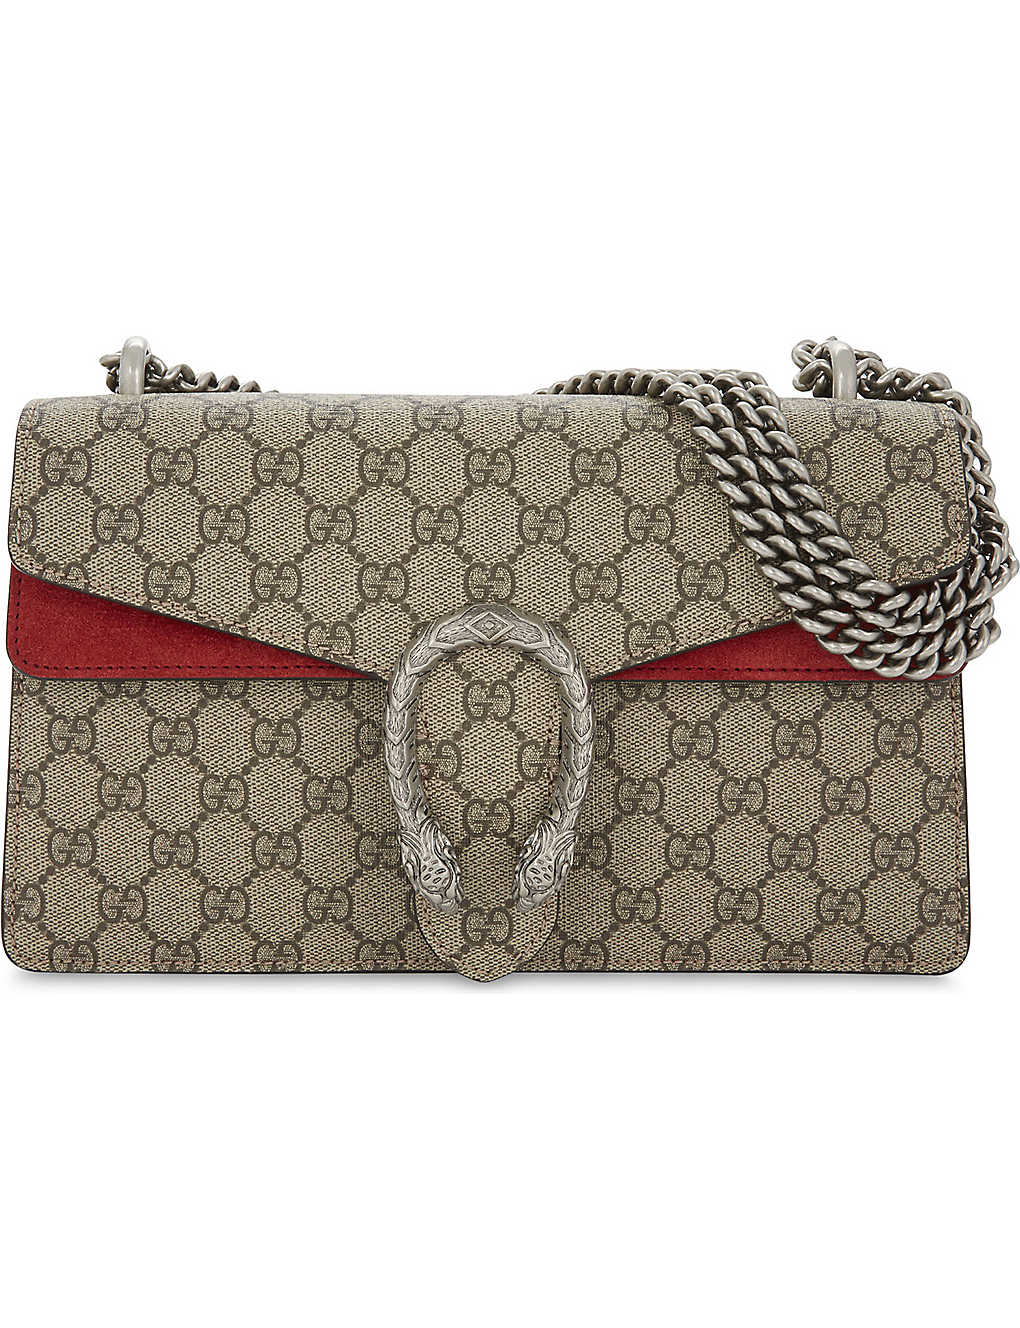 78d21ad38d71 GUCCI - Dionysus small GG Supreme canvas shoulder bag | Selfridges.com